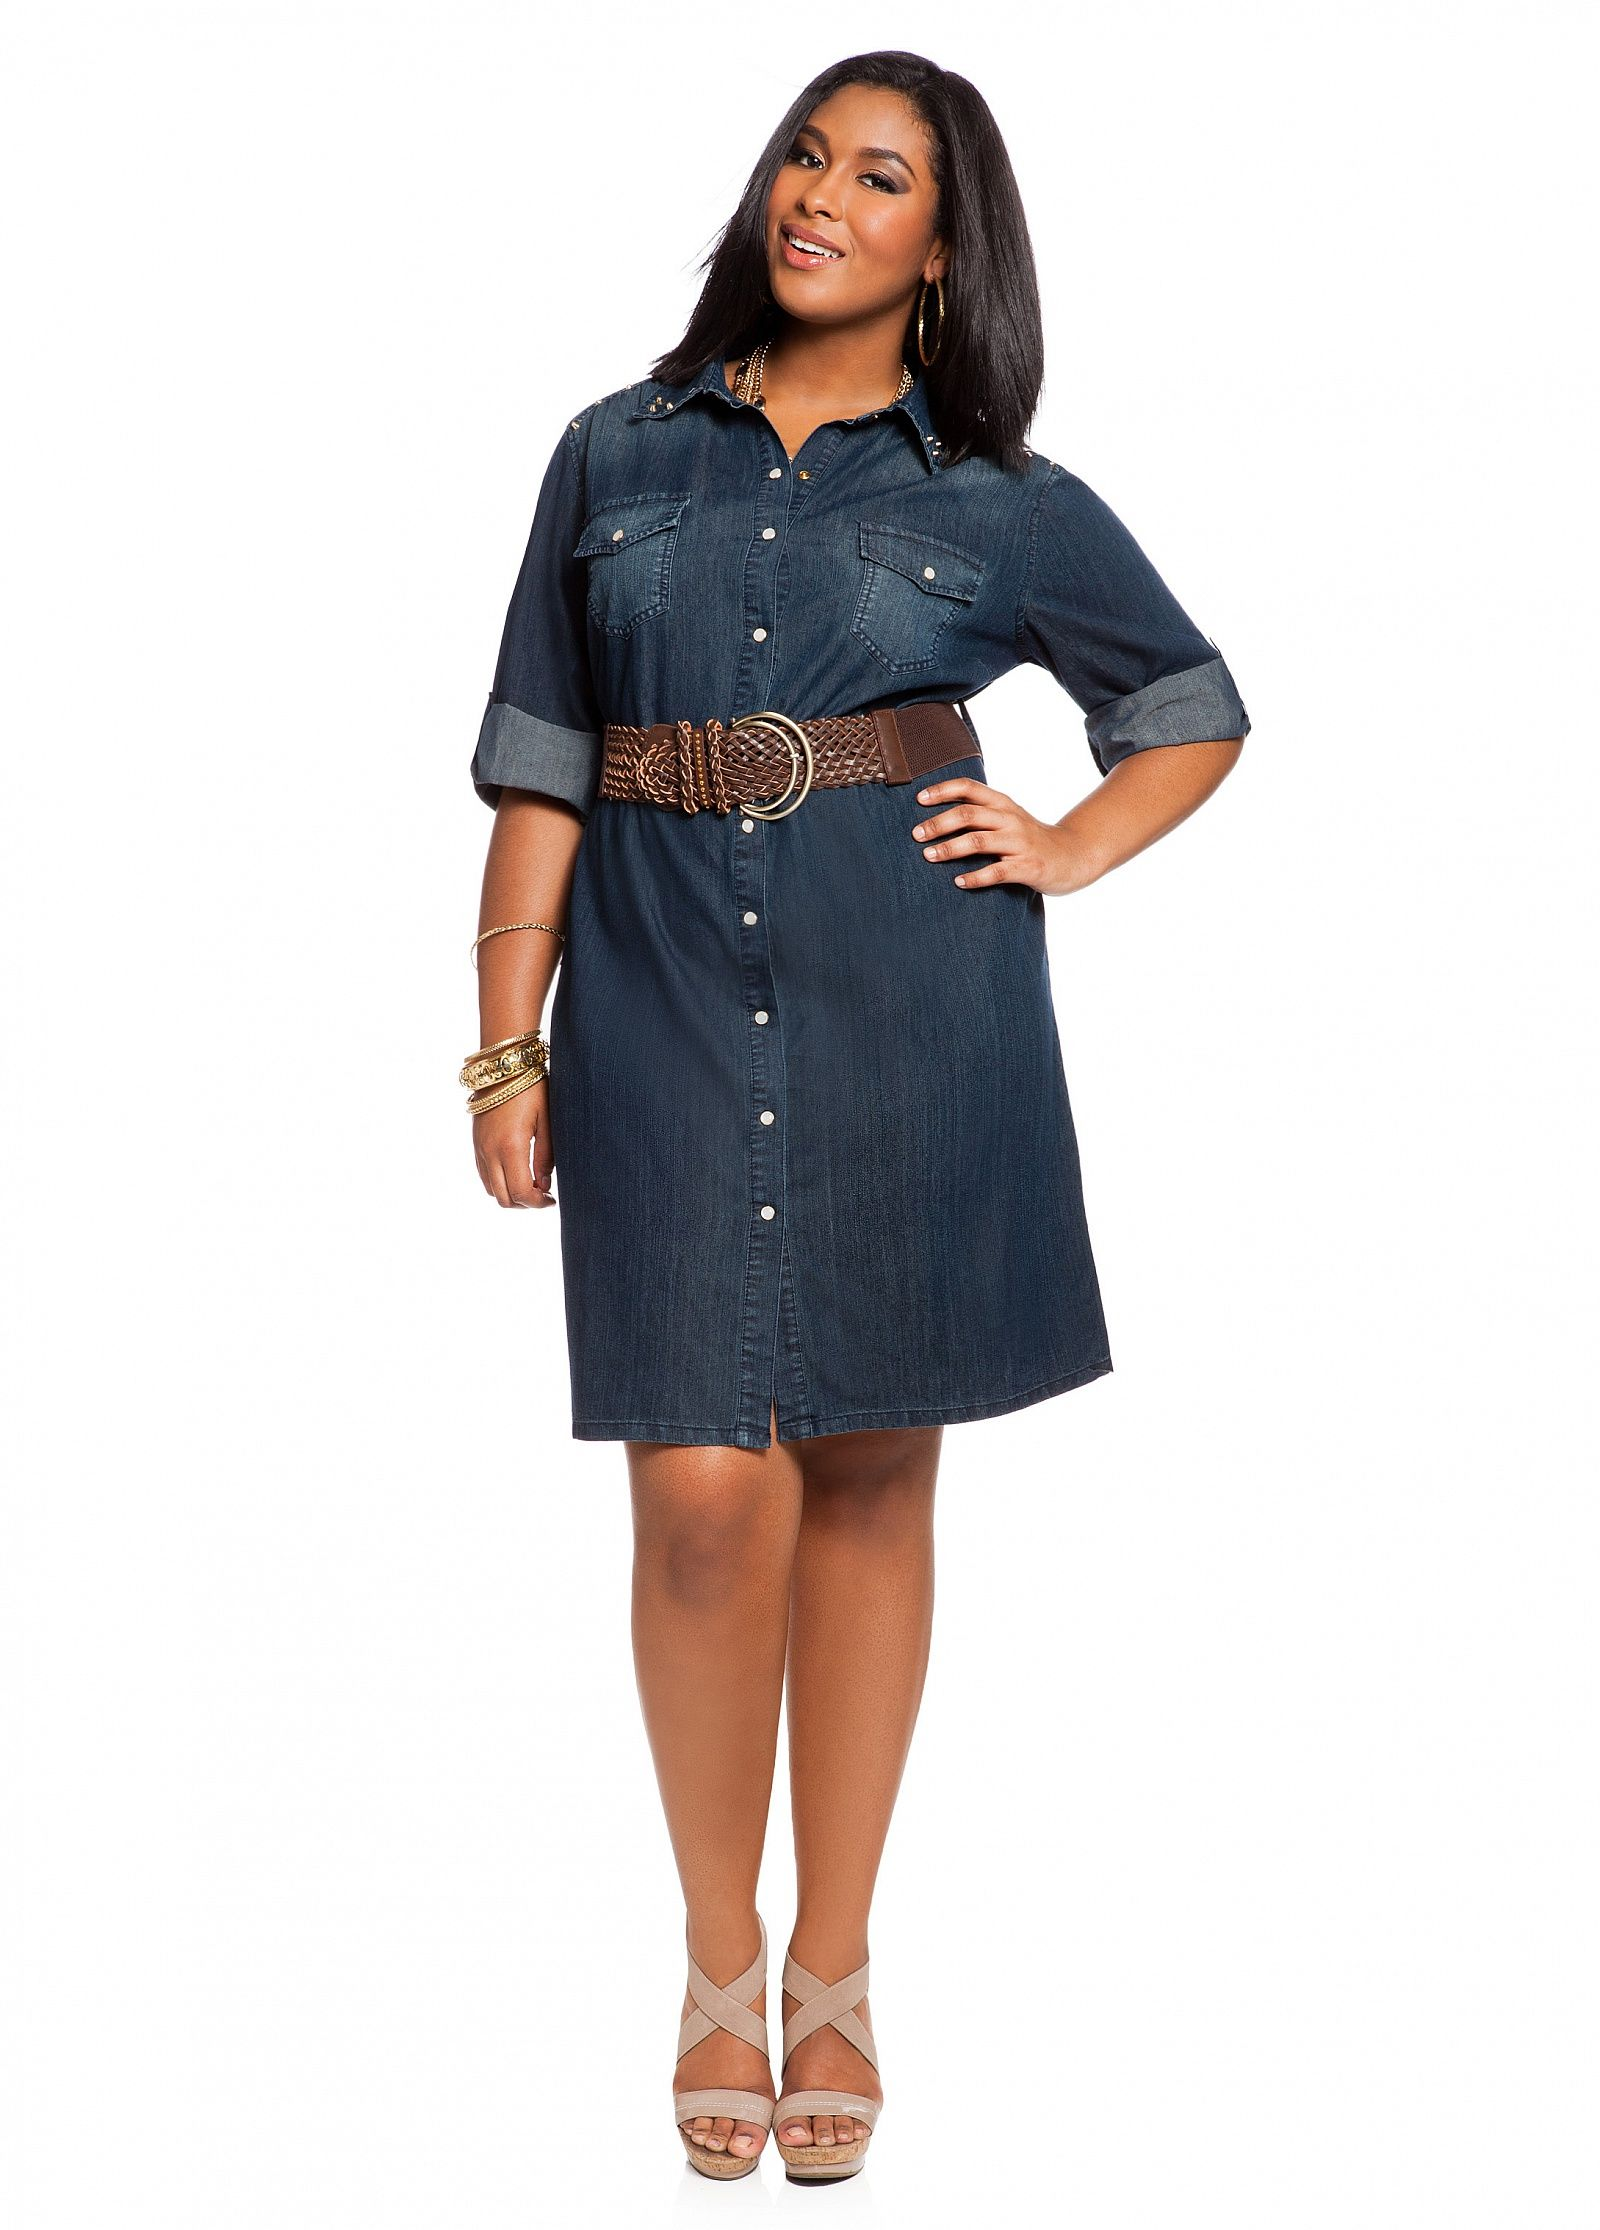 Ashley Stewart: Denim Shirt Plus Size Dress | I Would Wear That ...